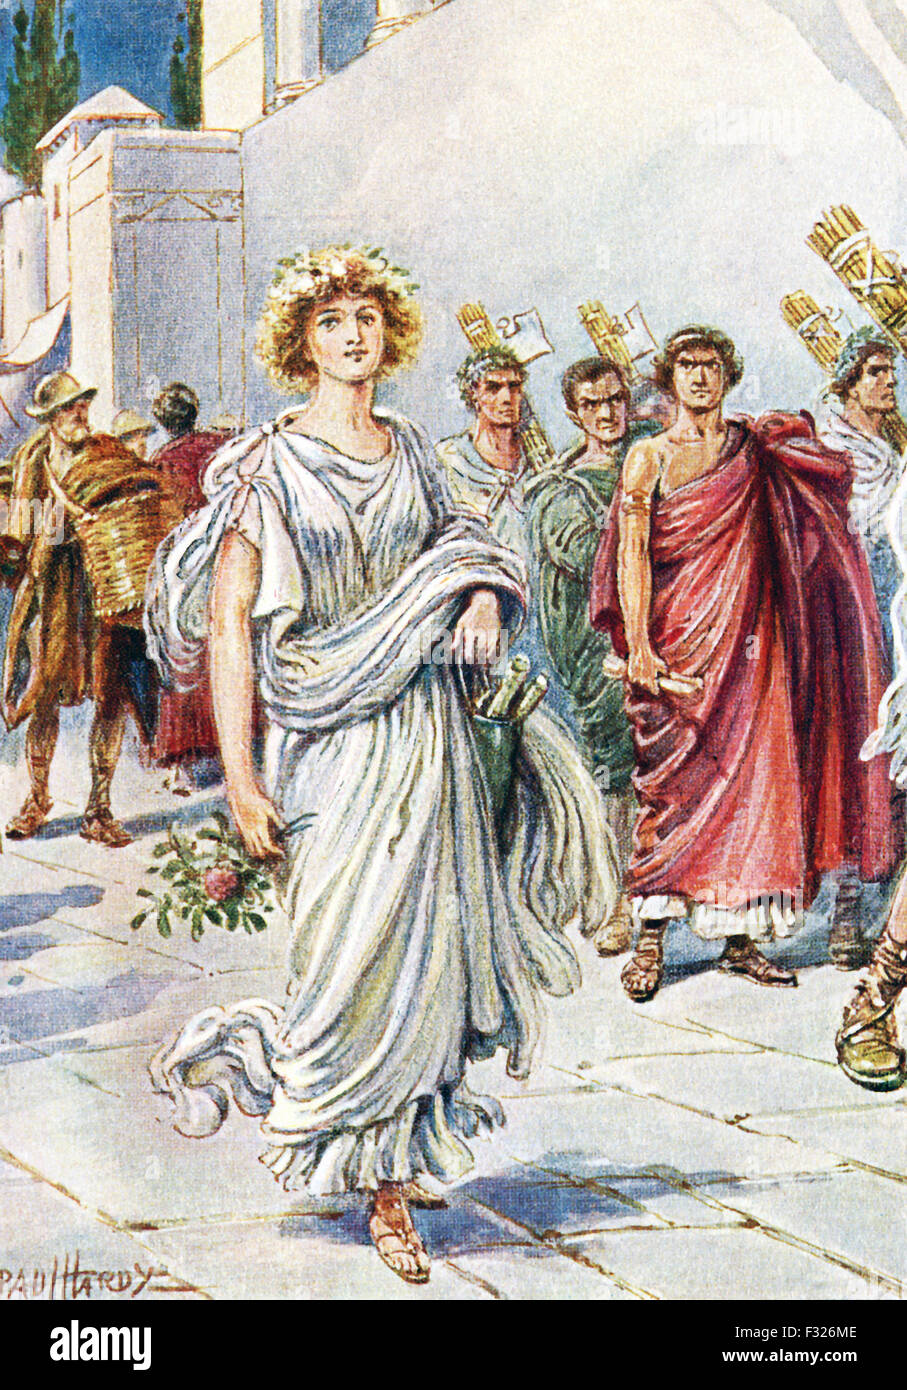 According to the ancient Roman historian Livy, Virginia (also spelled Verginia) was the daughter of the respected Stock Photo